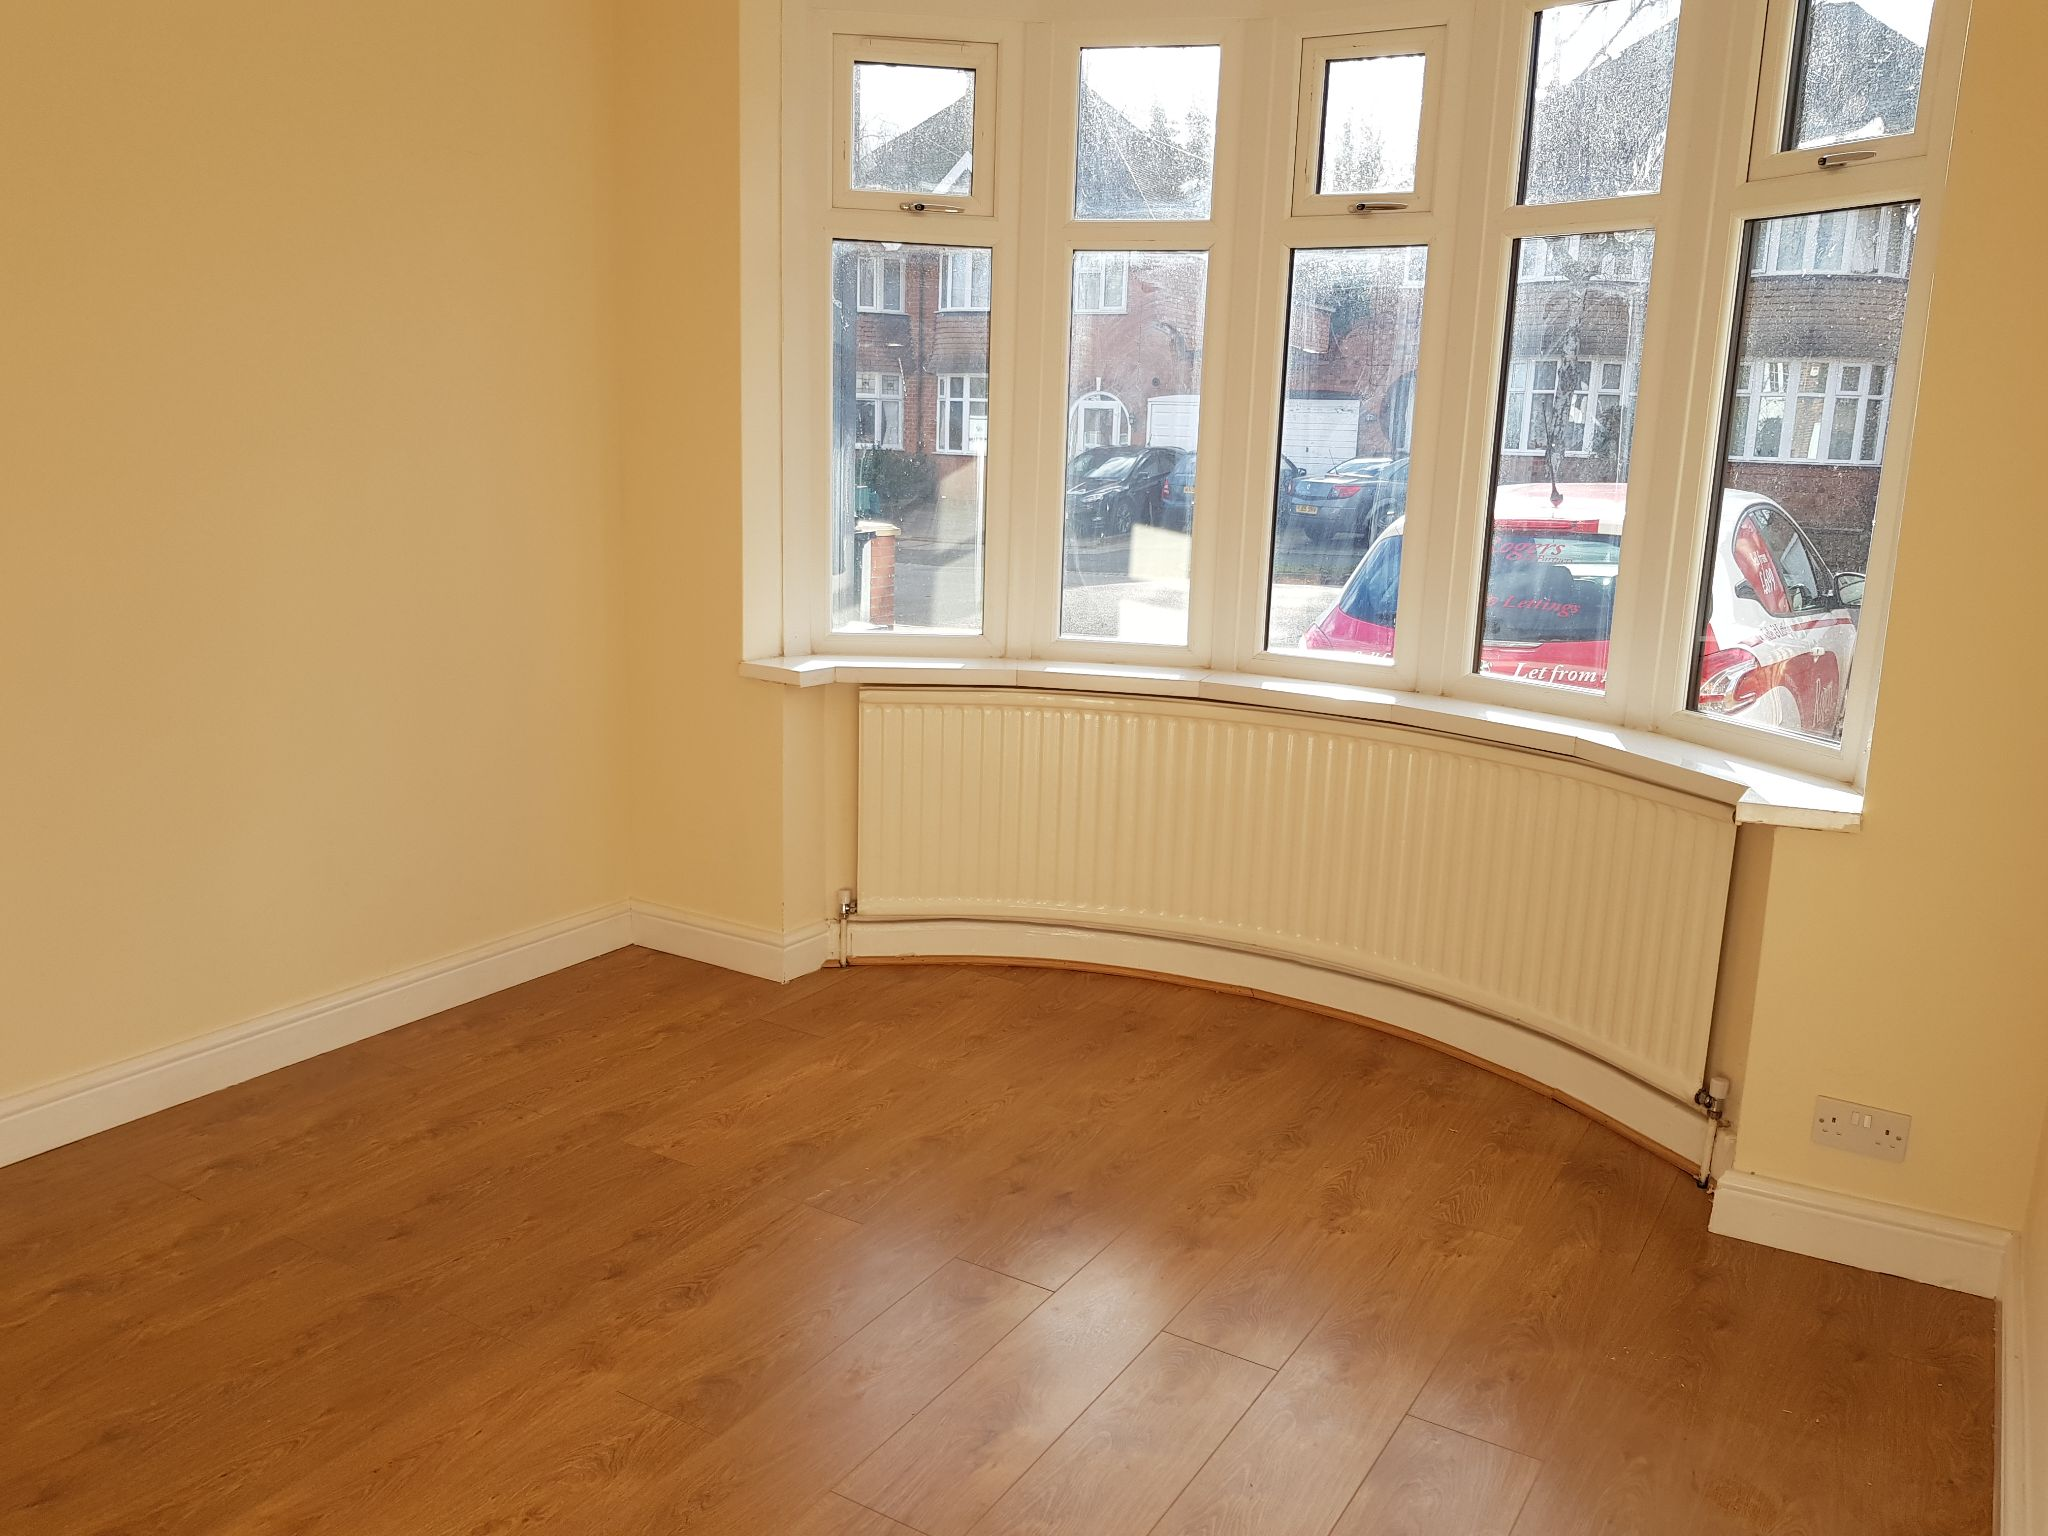 3 Bedroom Semi-detached House For Sale - Front Reception Room